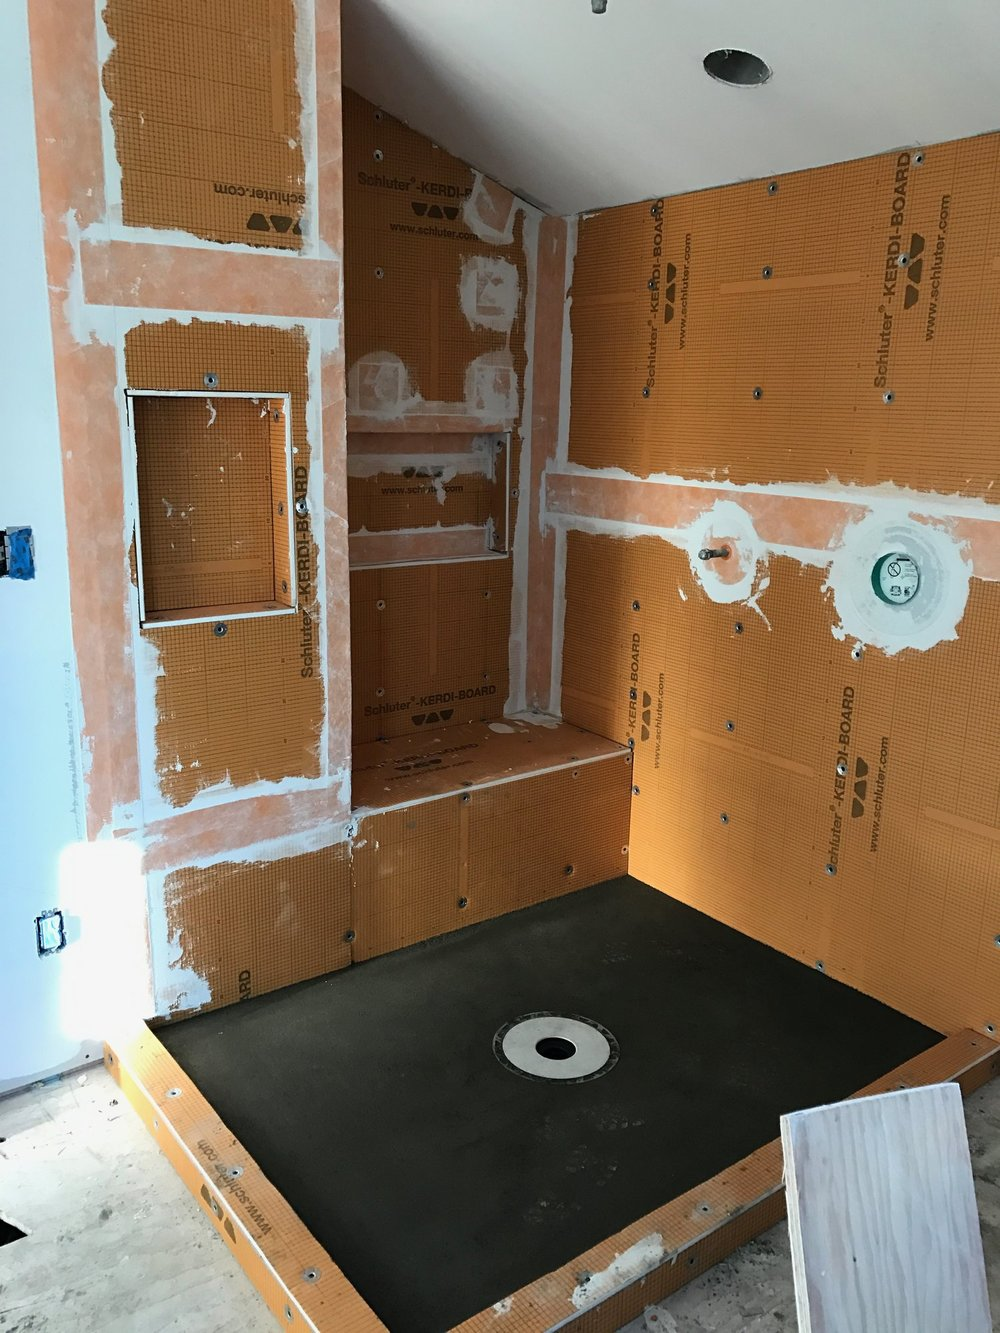 Here at OBI we are big fans of the Schluter/Kerdi waterproofing system for our tile assemblies This both allows a seamless transition to the adjoining walls but is light and the best waterproofing possible!